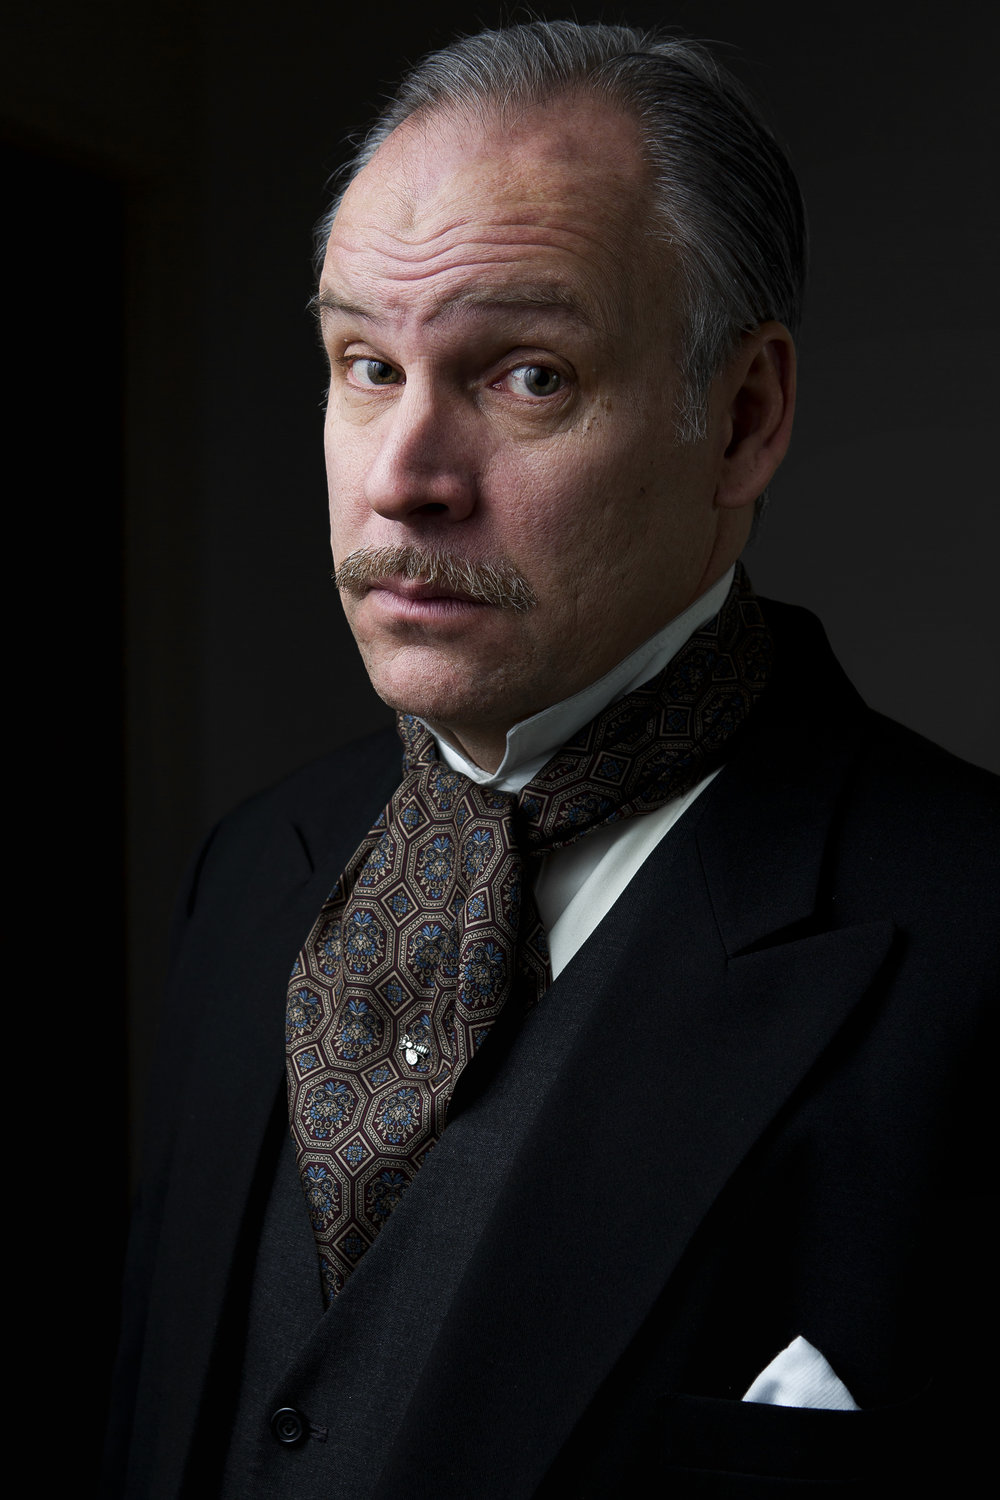 Winslow Boy - Repertory Theatre St. Louis